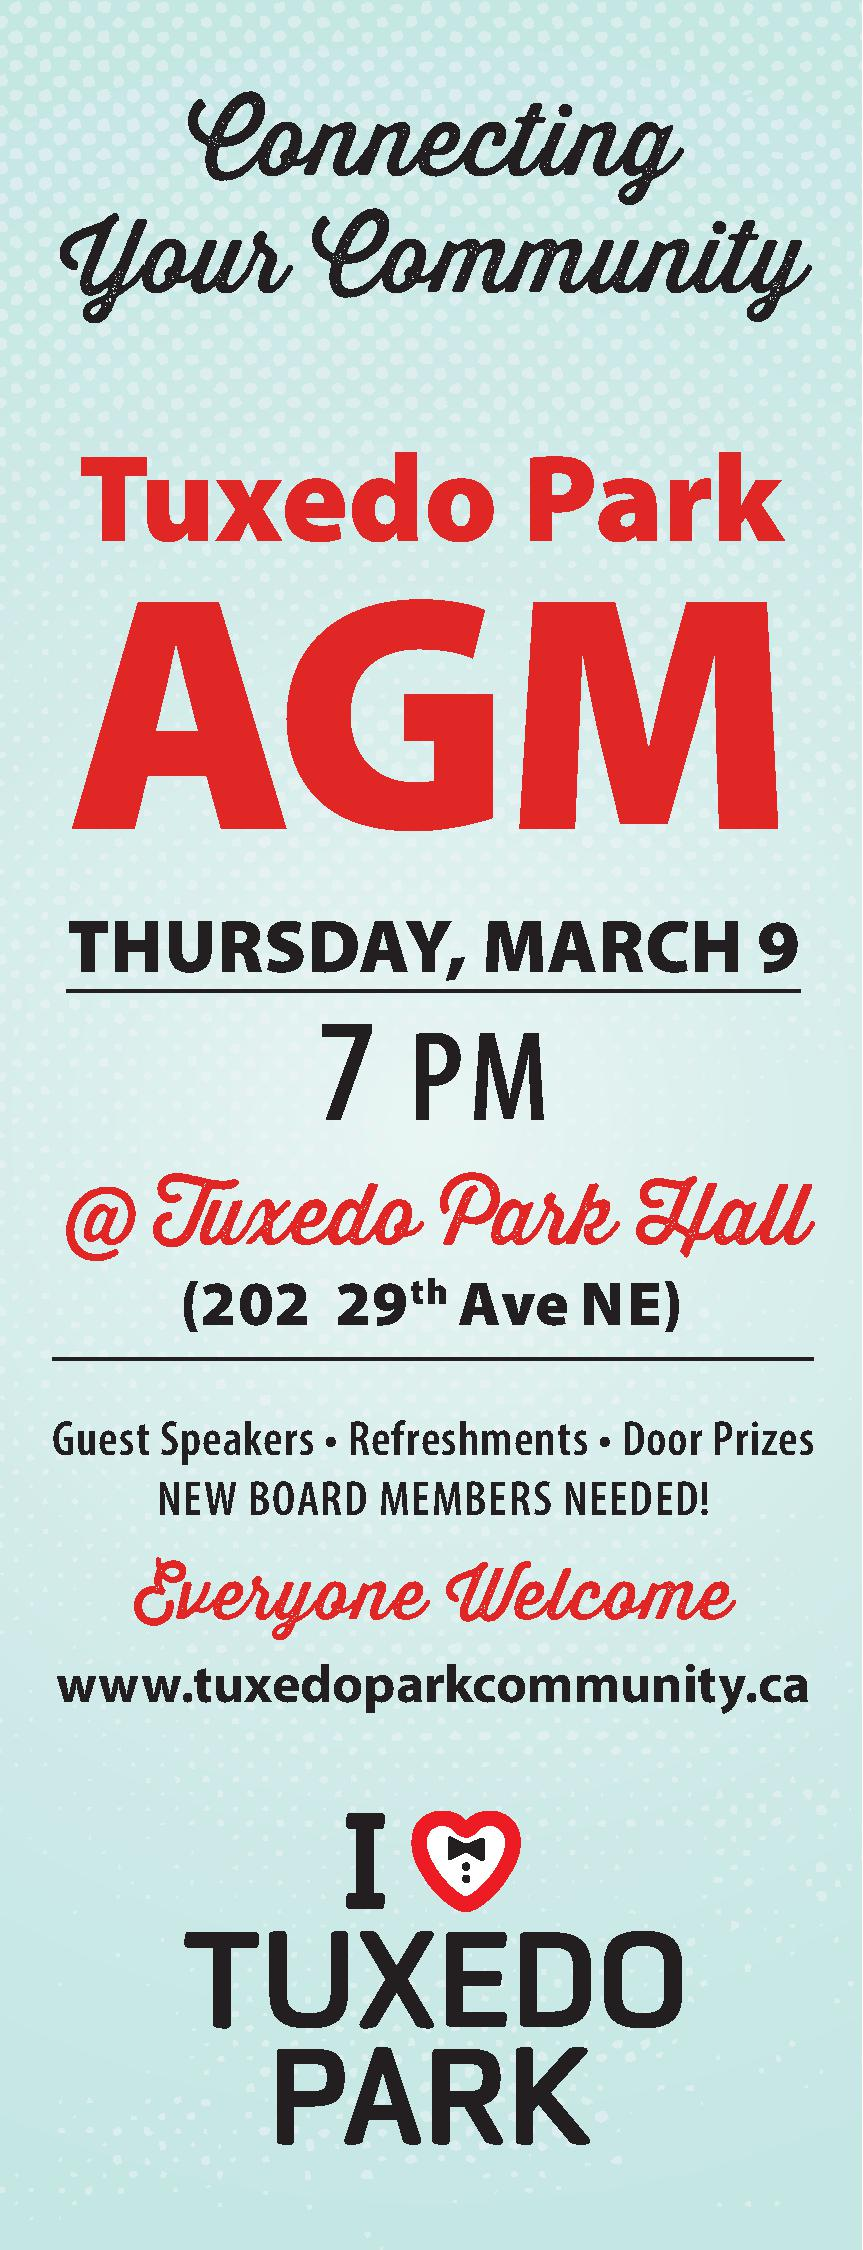 Tuxedo Park's 2017 Annual General Meeting